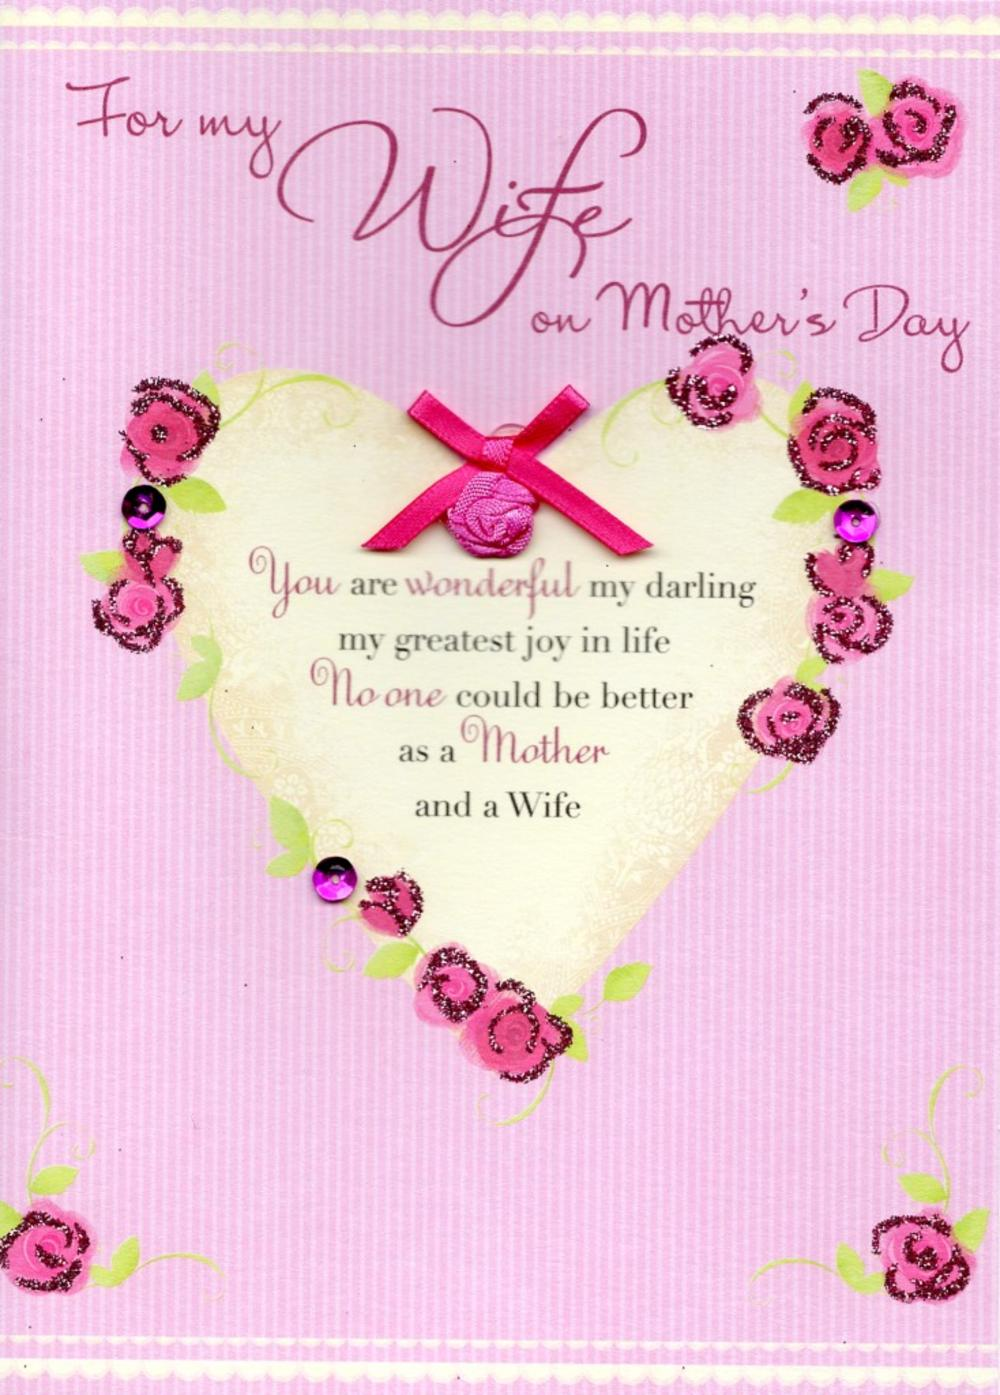 To My Wife On Mother's Day Card